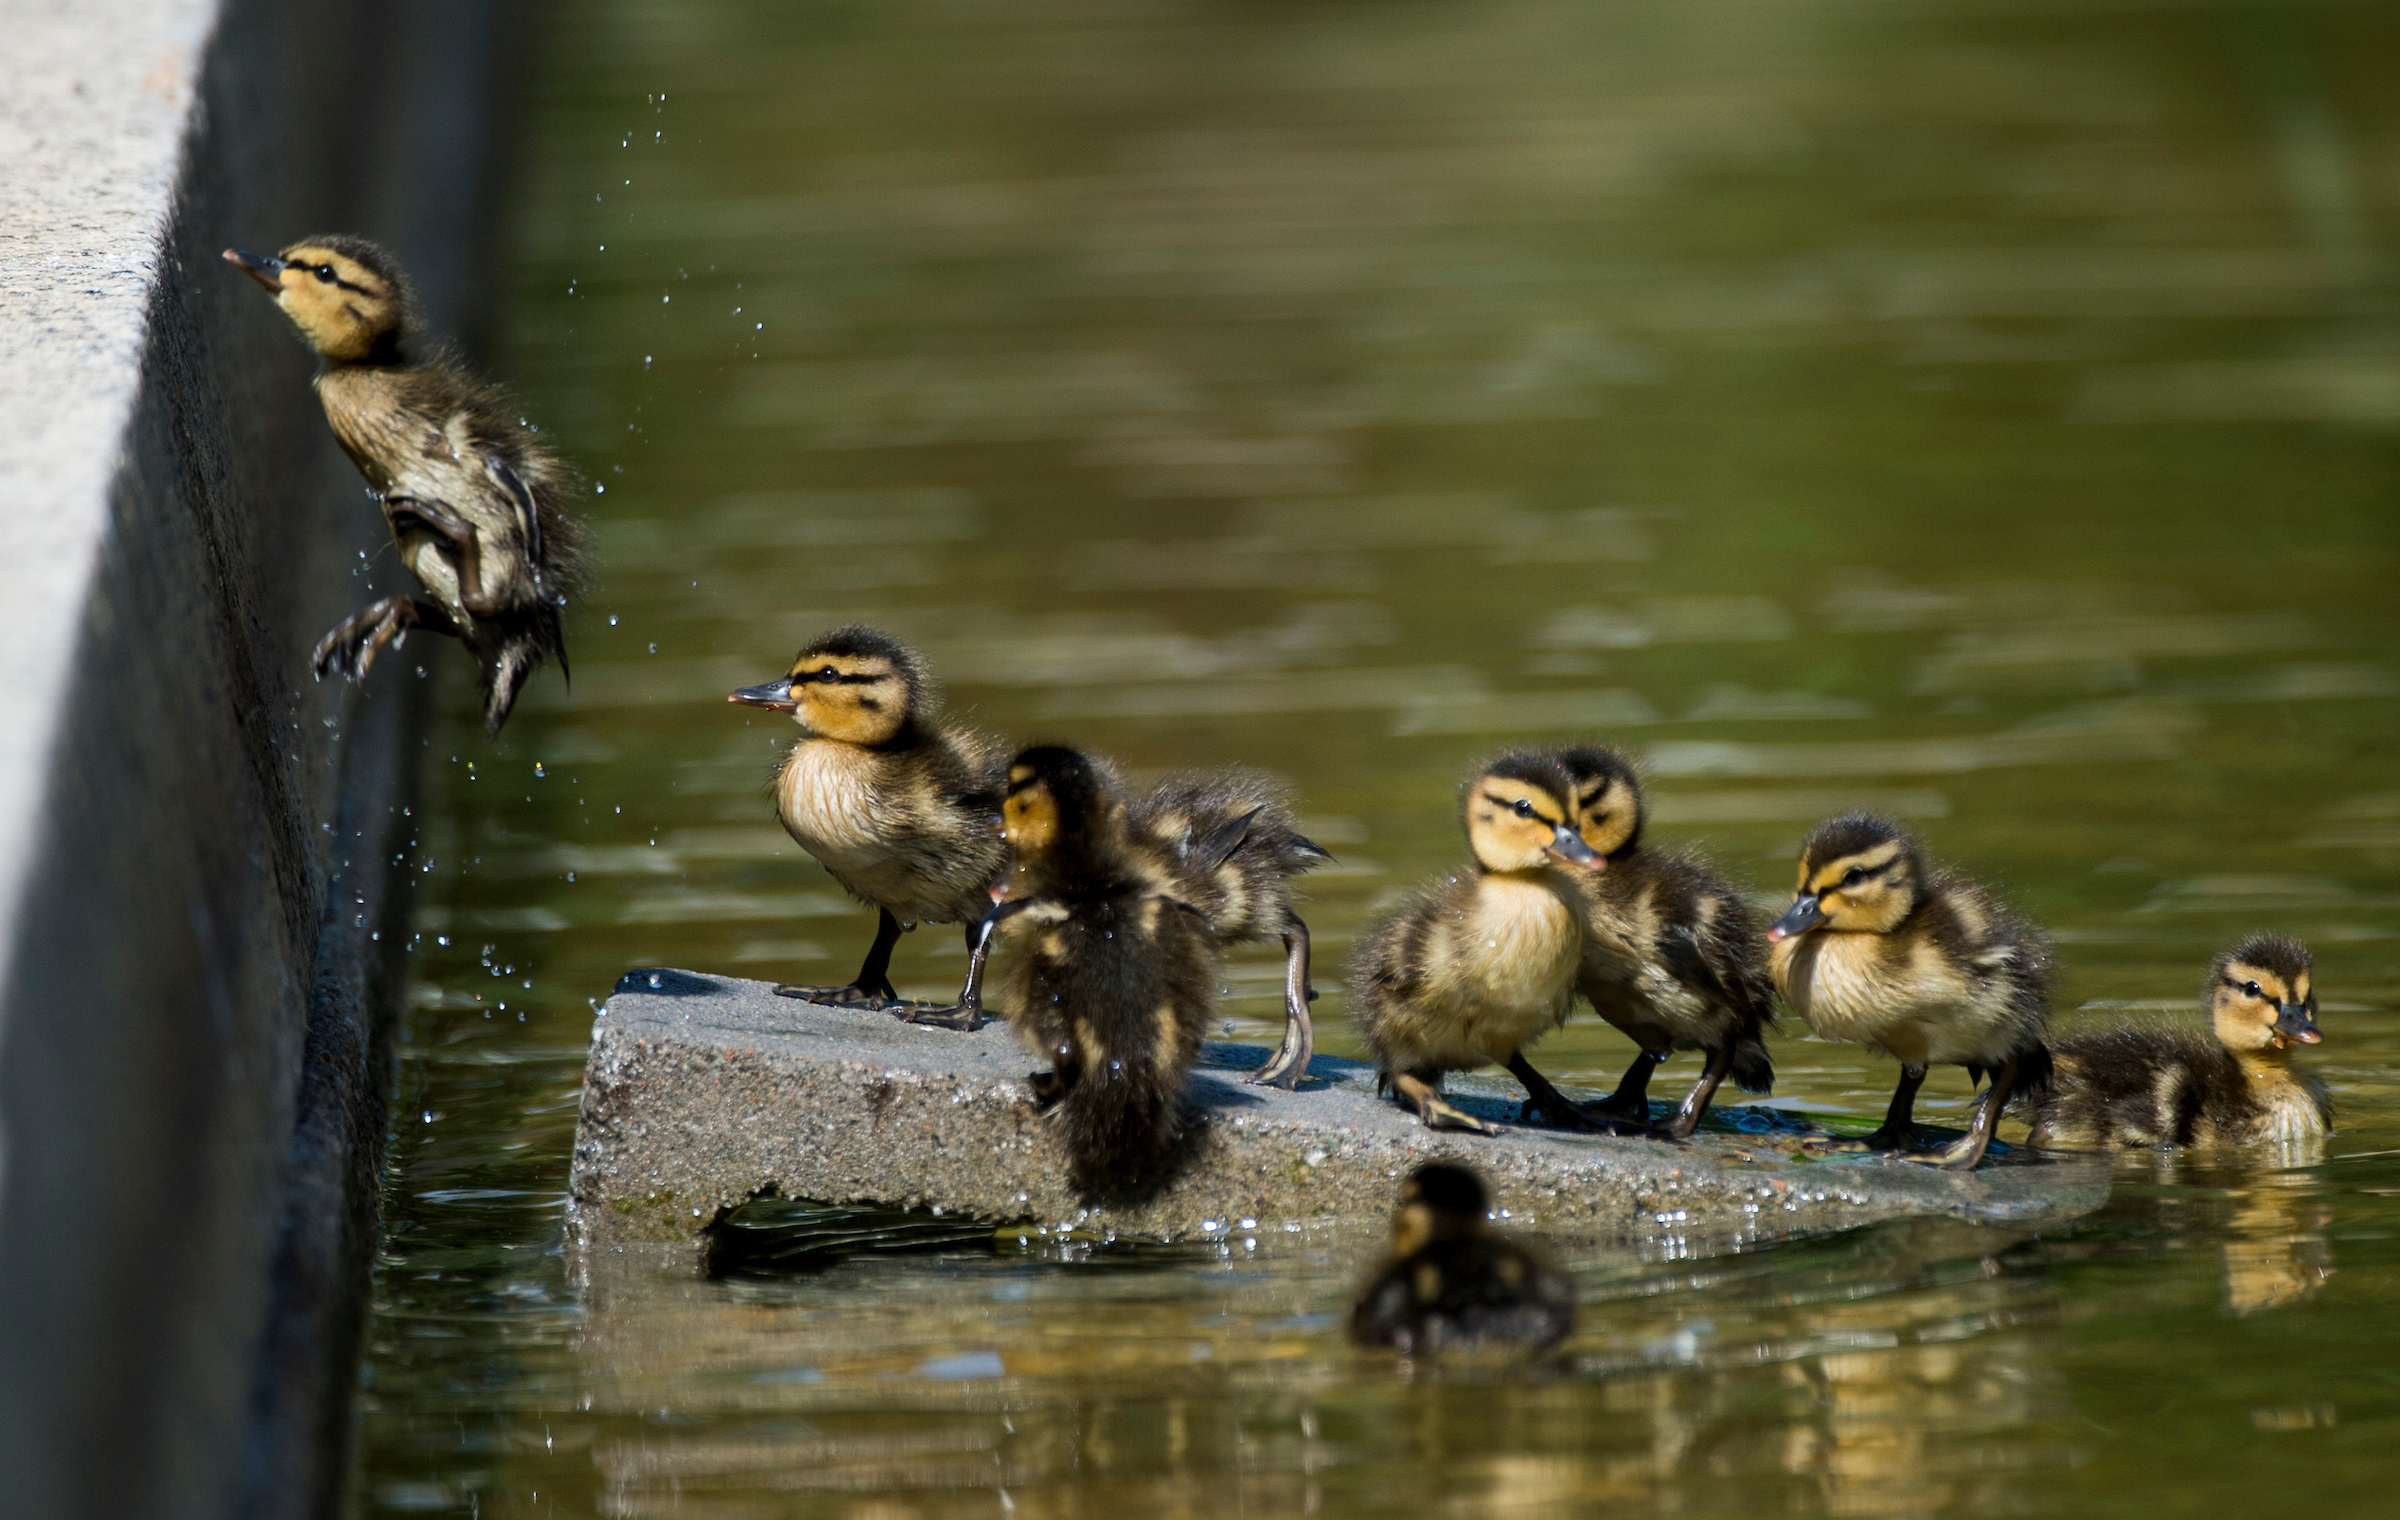 Two-day old ducklings try to leap out of the Lower Senate Park reflecting pool on the U.S. Capitol grounds to reach their mother on Thursday, May 14, 2015. The ten ducklings swam in the pool and walked across the plaza trying to keep up with their mother. (Bill Clark/CQ Roll Call)